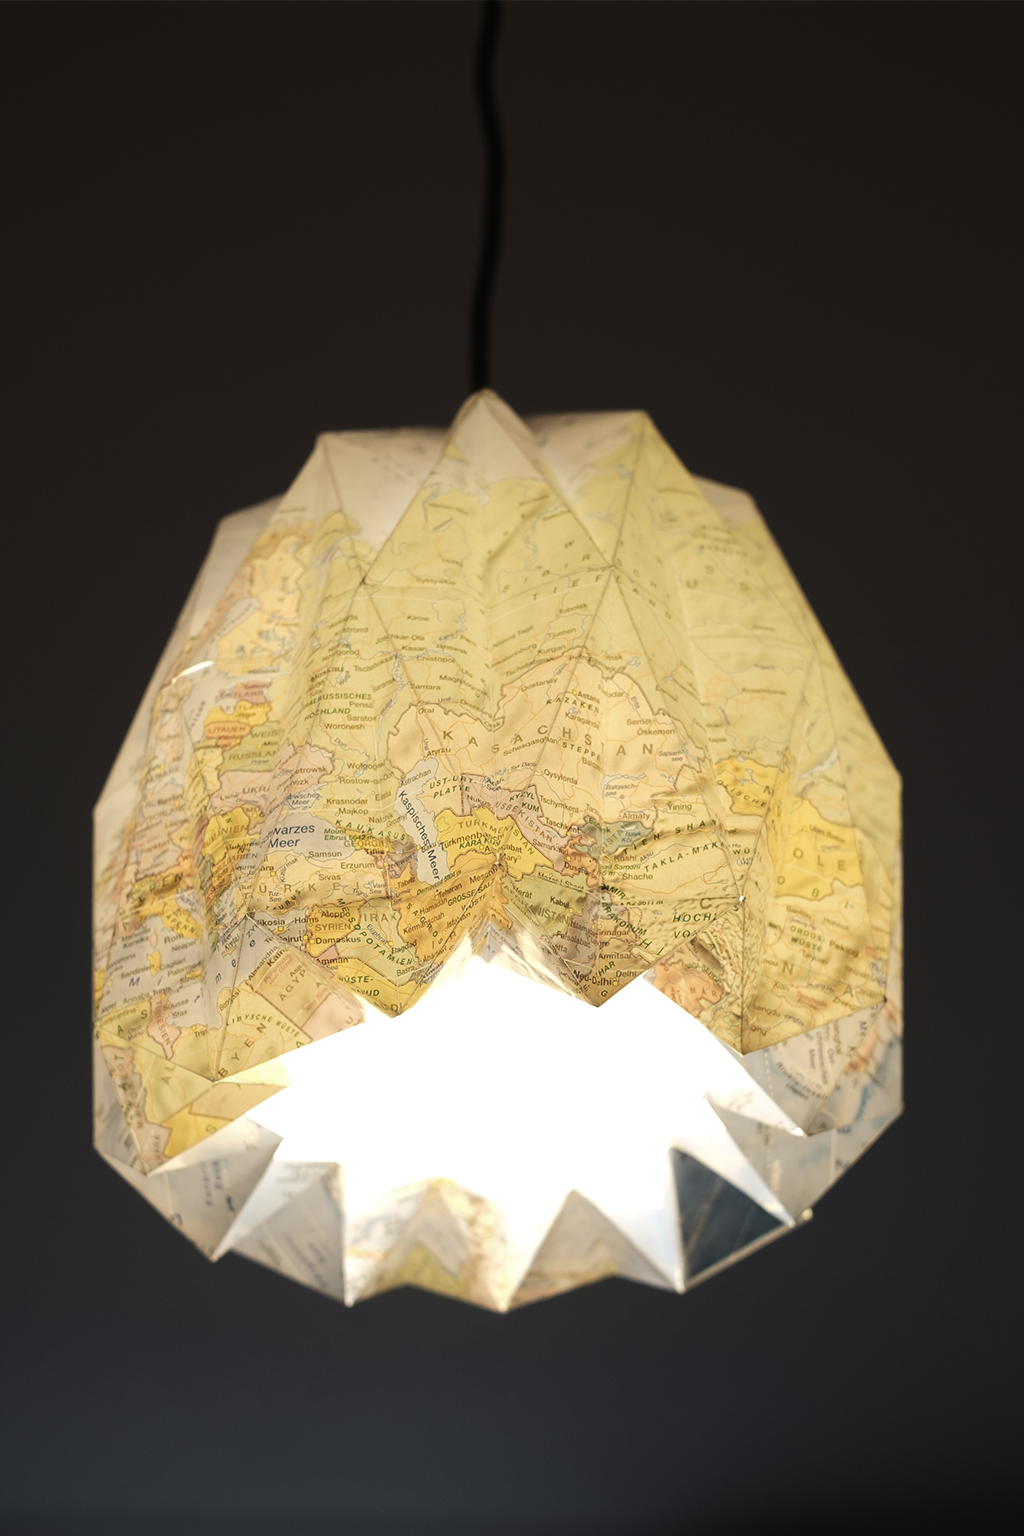 upcycled-map-lampshade